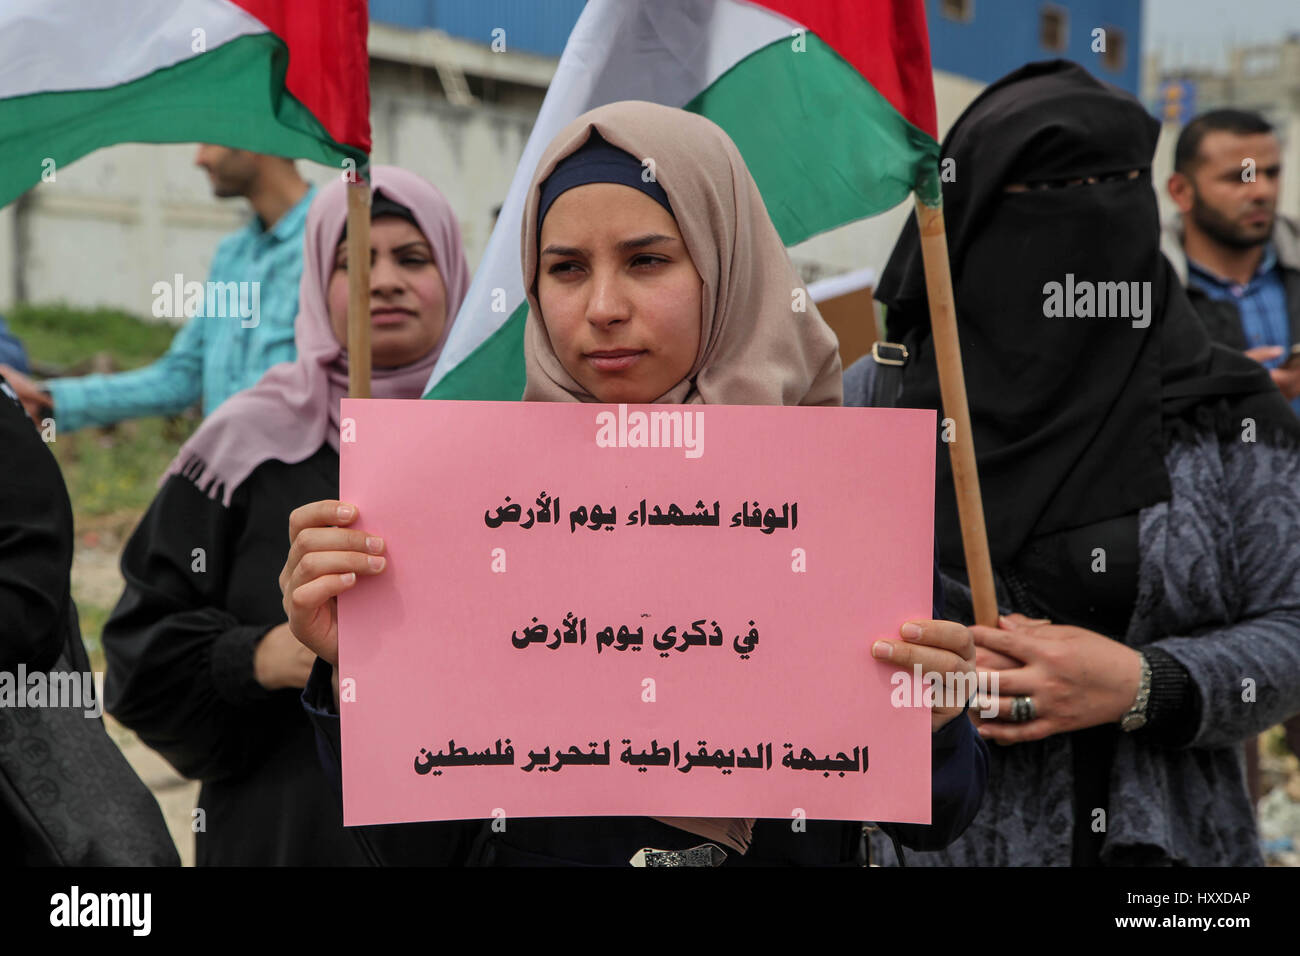 Gaza, Palestine. 30th Mar, 2017. Palestinian women hold flags and banners during the commemoration of the 41st Palestinian - Stock Image